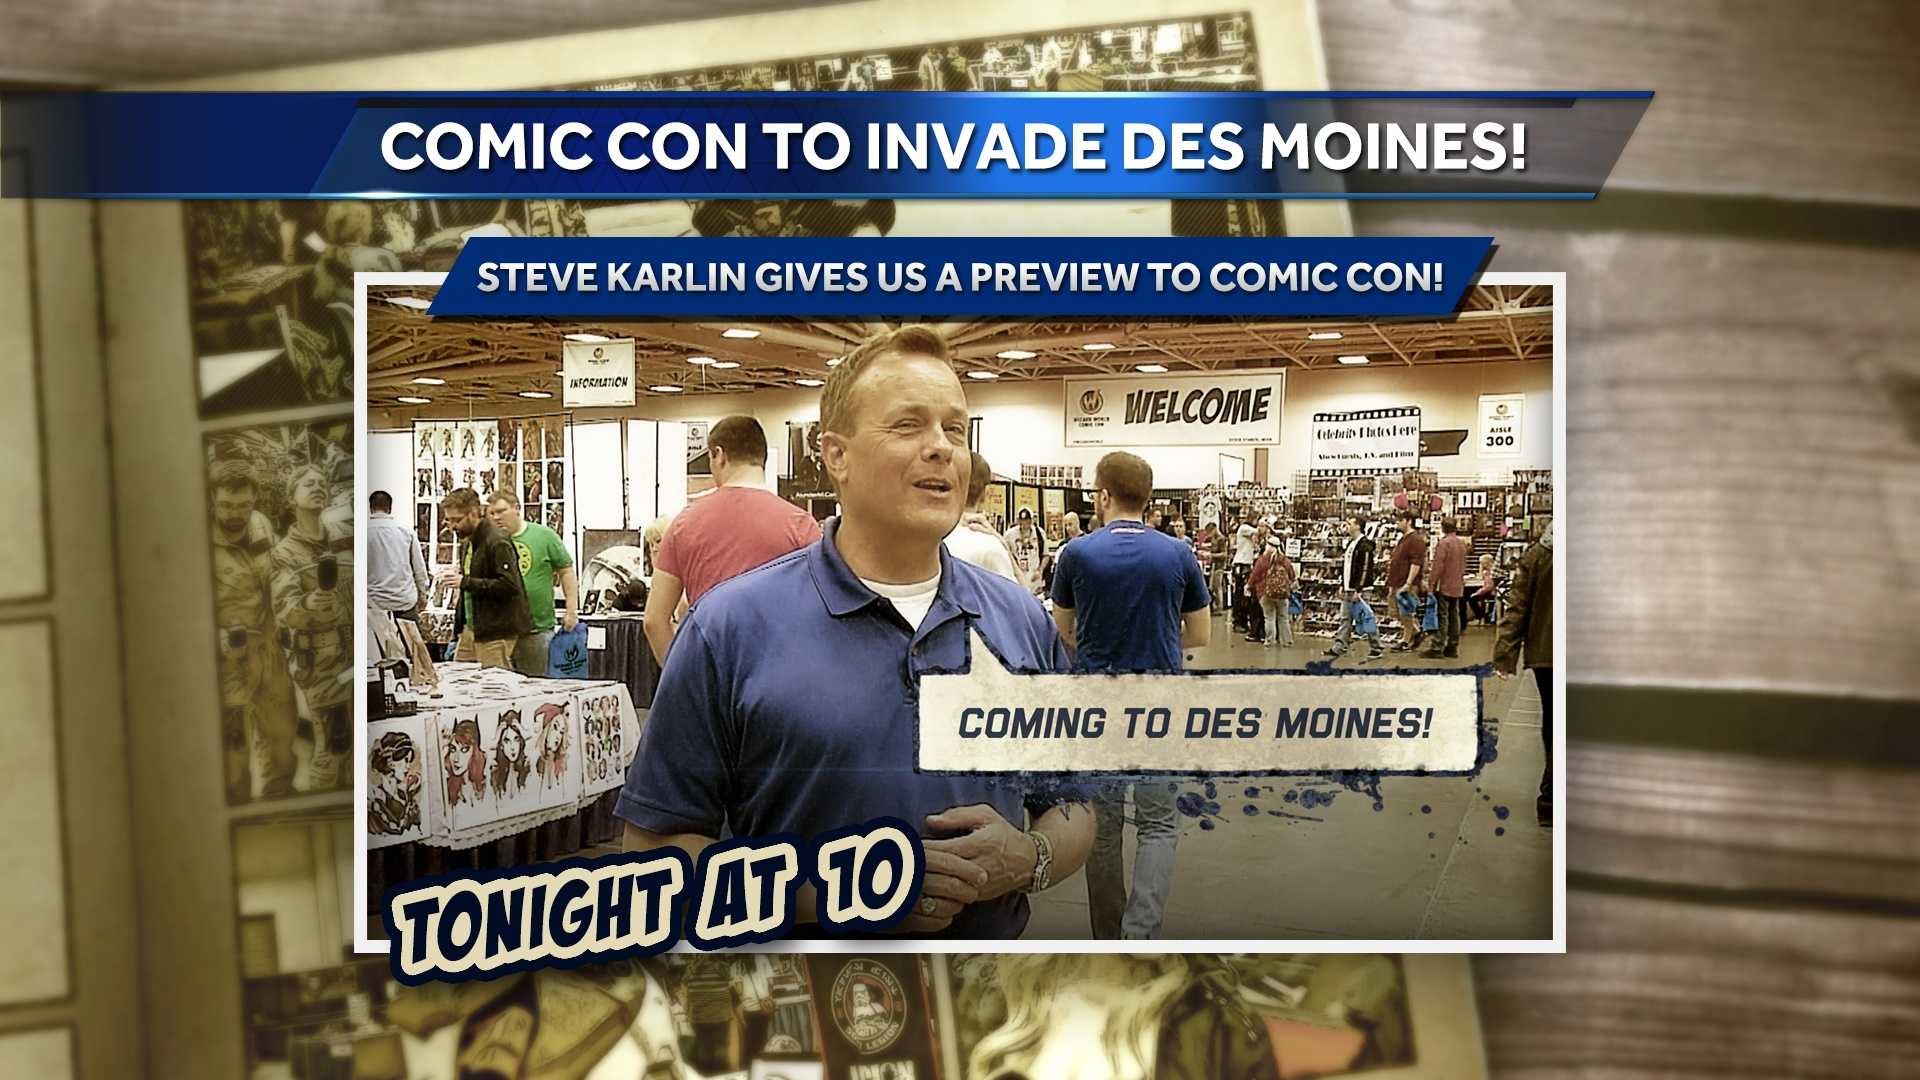 Nerd Alert: Comic Con is coming to Des Moines this year for the first time.  So Steve Karlin KCCI took a trip to Minnesota to give you a sneak peek of what to expect when the show comes to Des Moines next month.  See the story tonight on KCCI 8 News at 10.